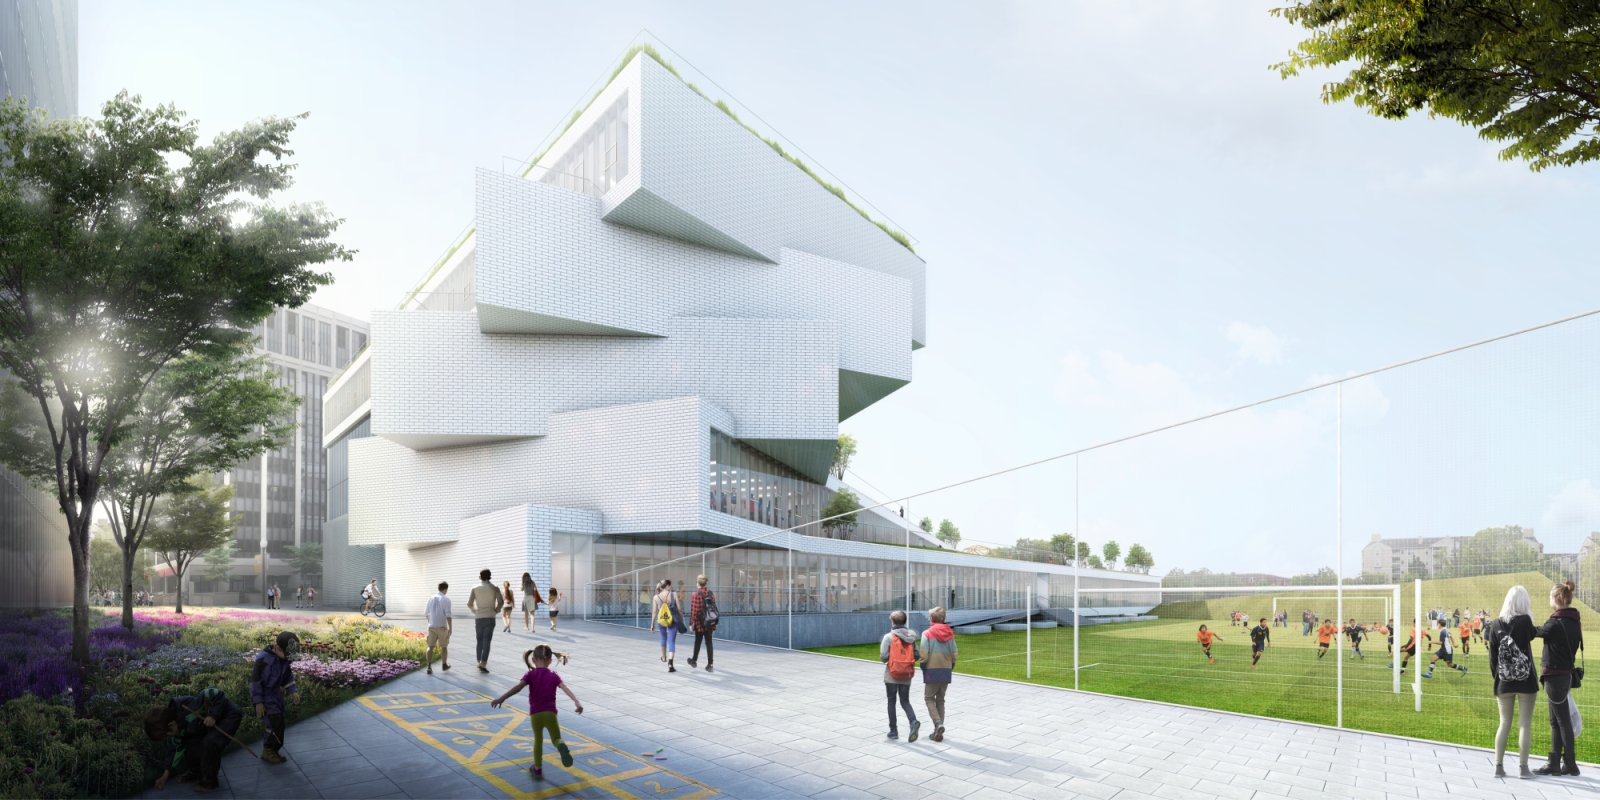 Wilson secondary school by big bjarke ingels group 01 for Big bjarke ingels group